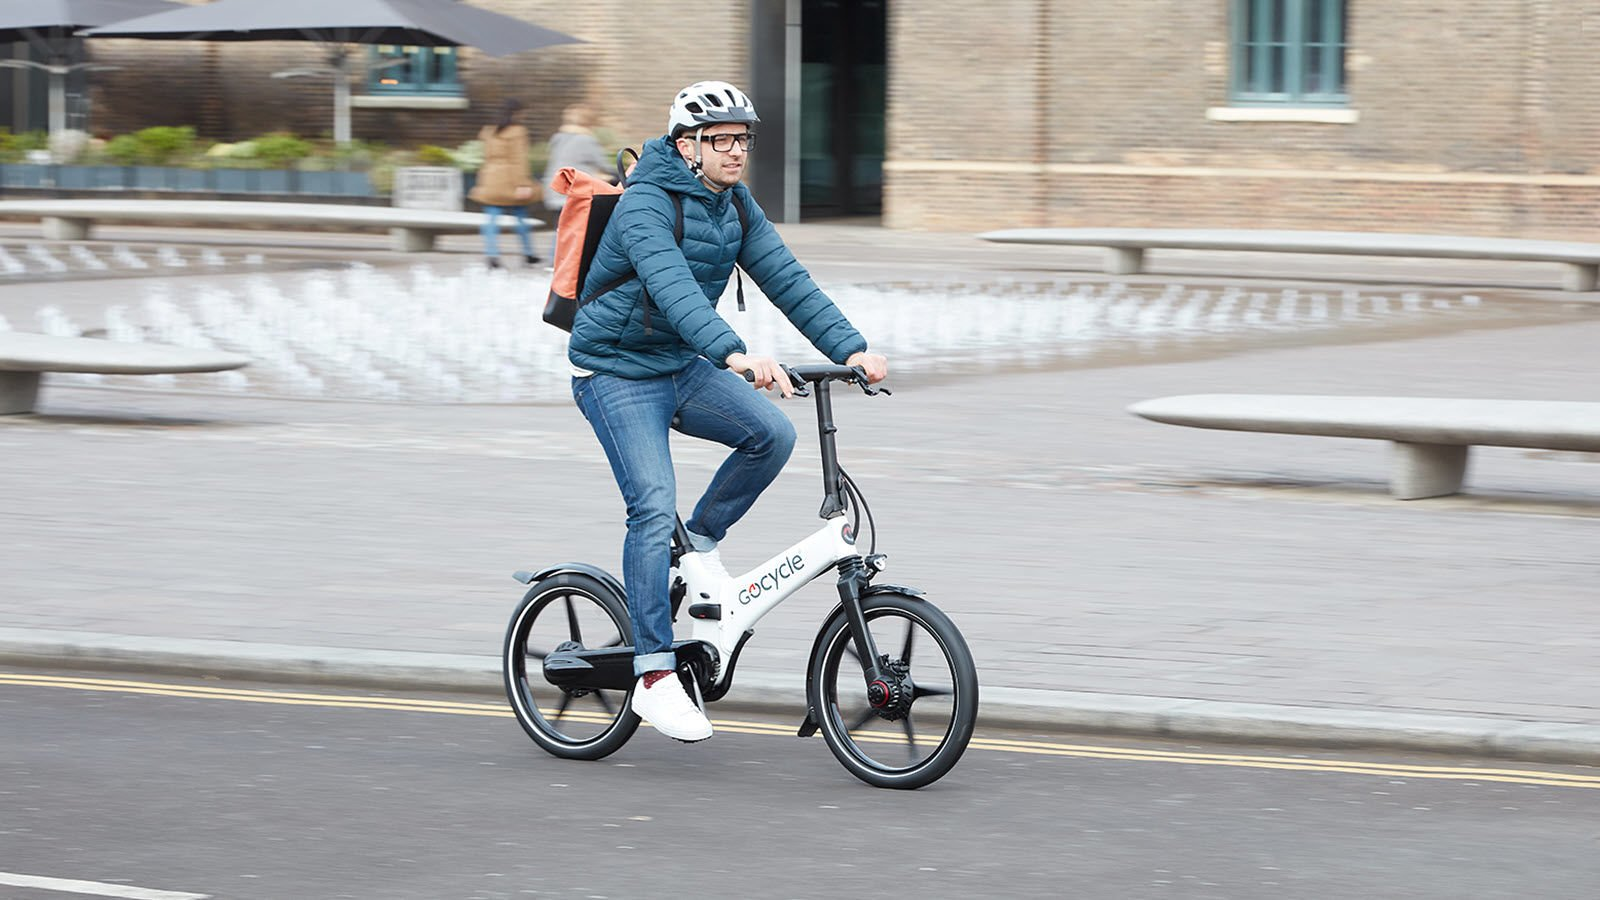 Can you get fit on an electric bike?